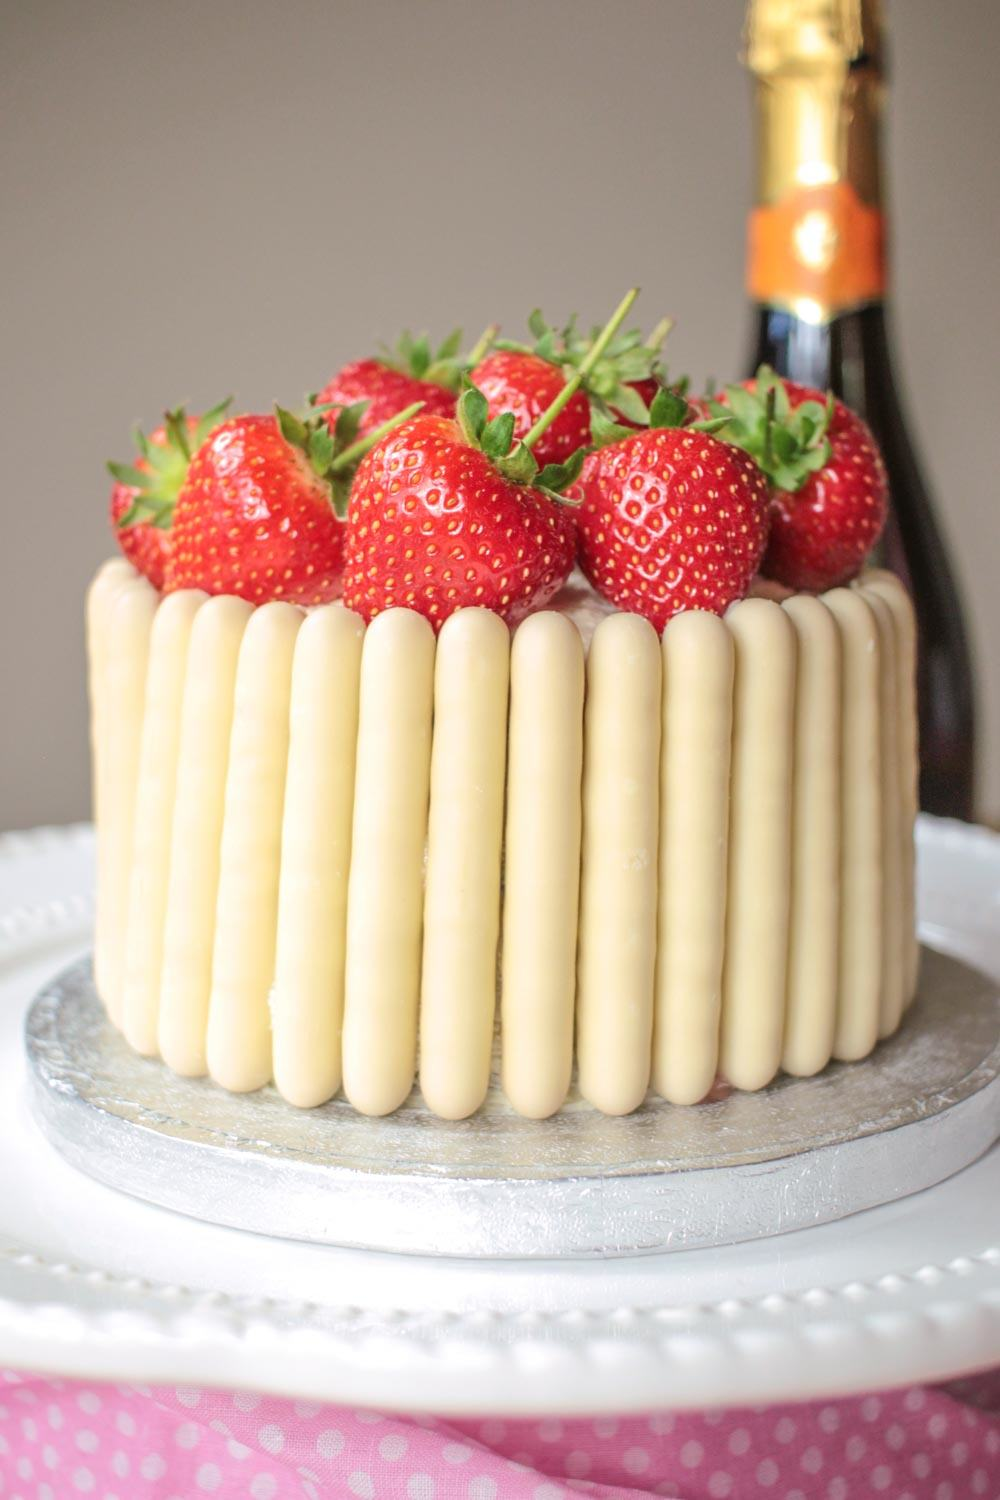 white-chocolate-strawberry-and-prosecco-cake-7 - Globe Scoffers | globescoffers.com